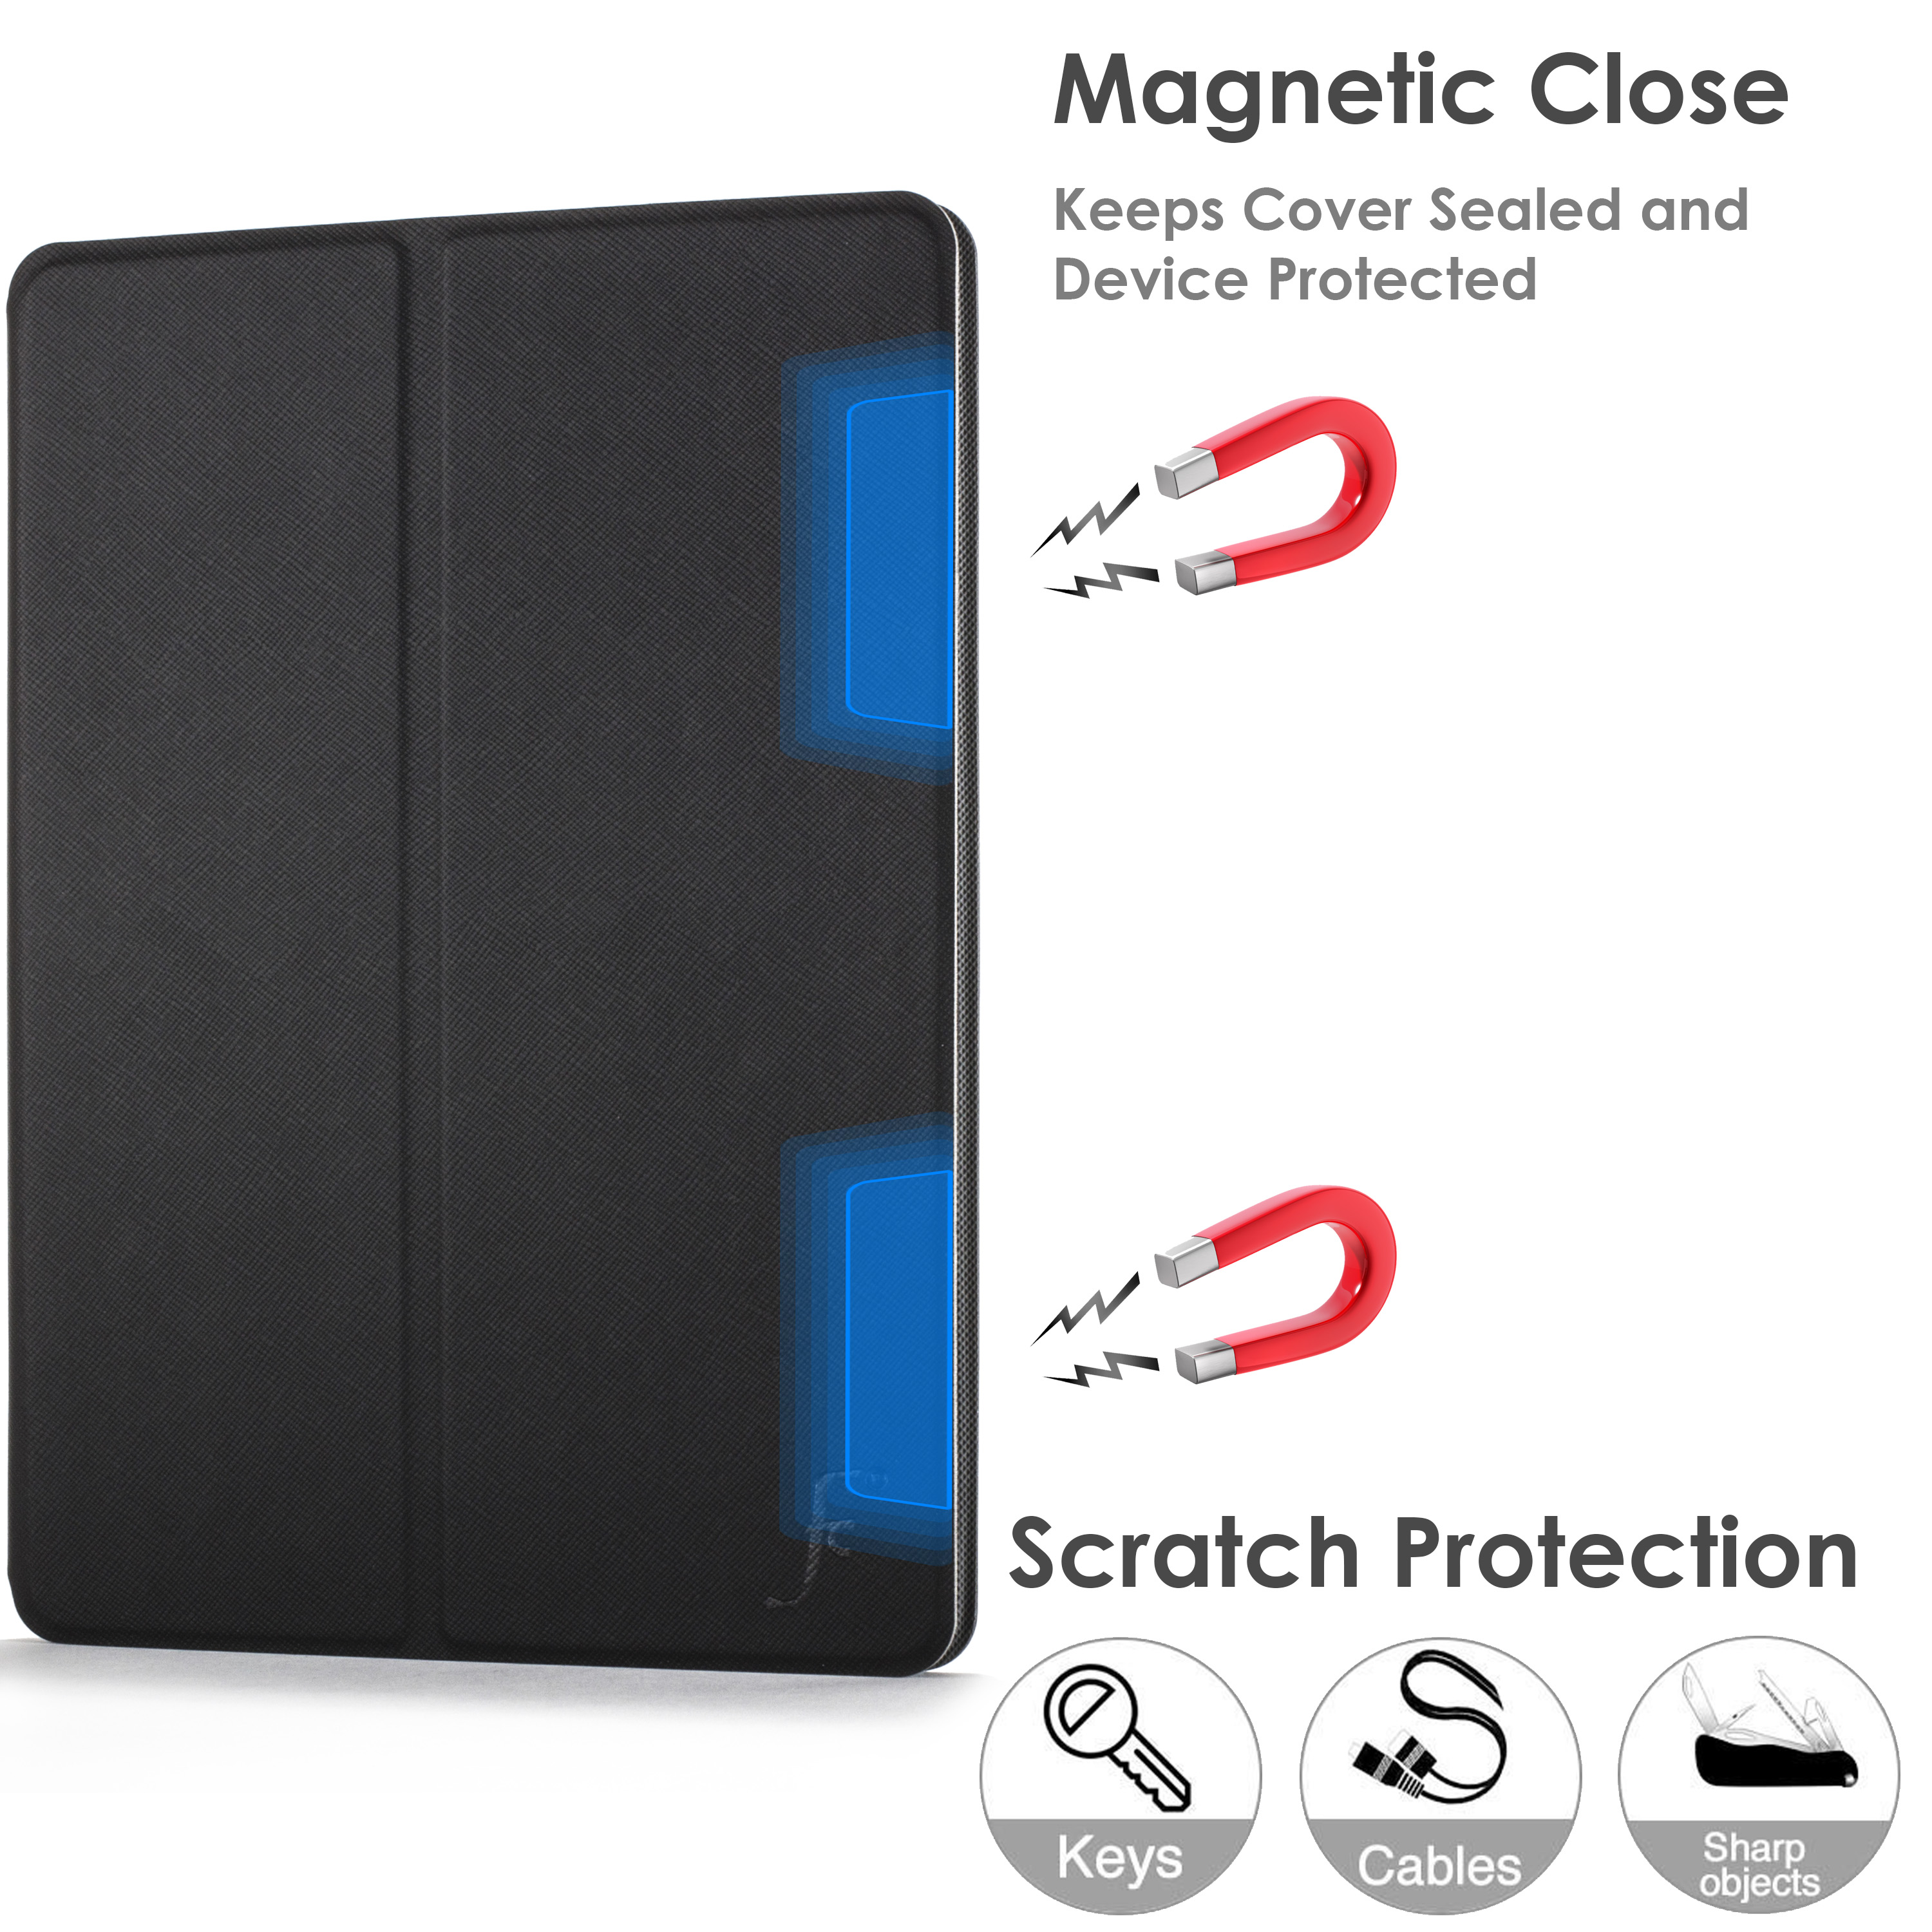 miniature 7 - Samsung Galaxy Tab A 10.1 2019 Étui Magnétique Protection & Support + Stylet